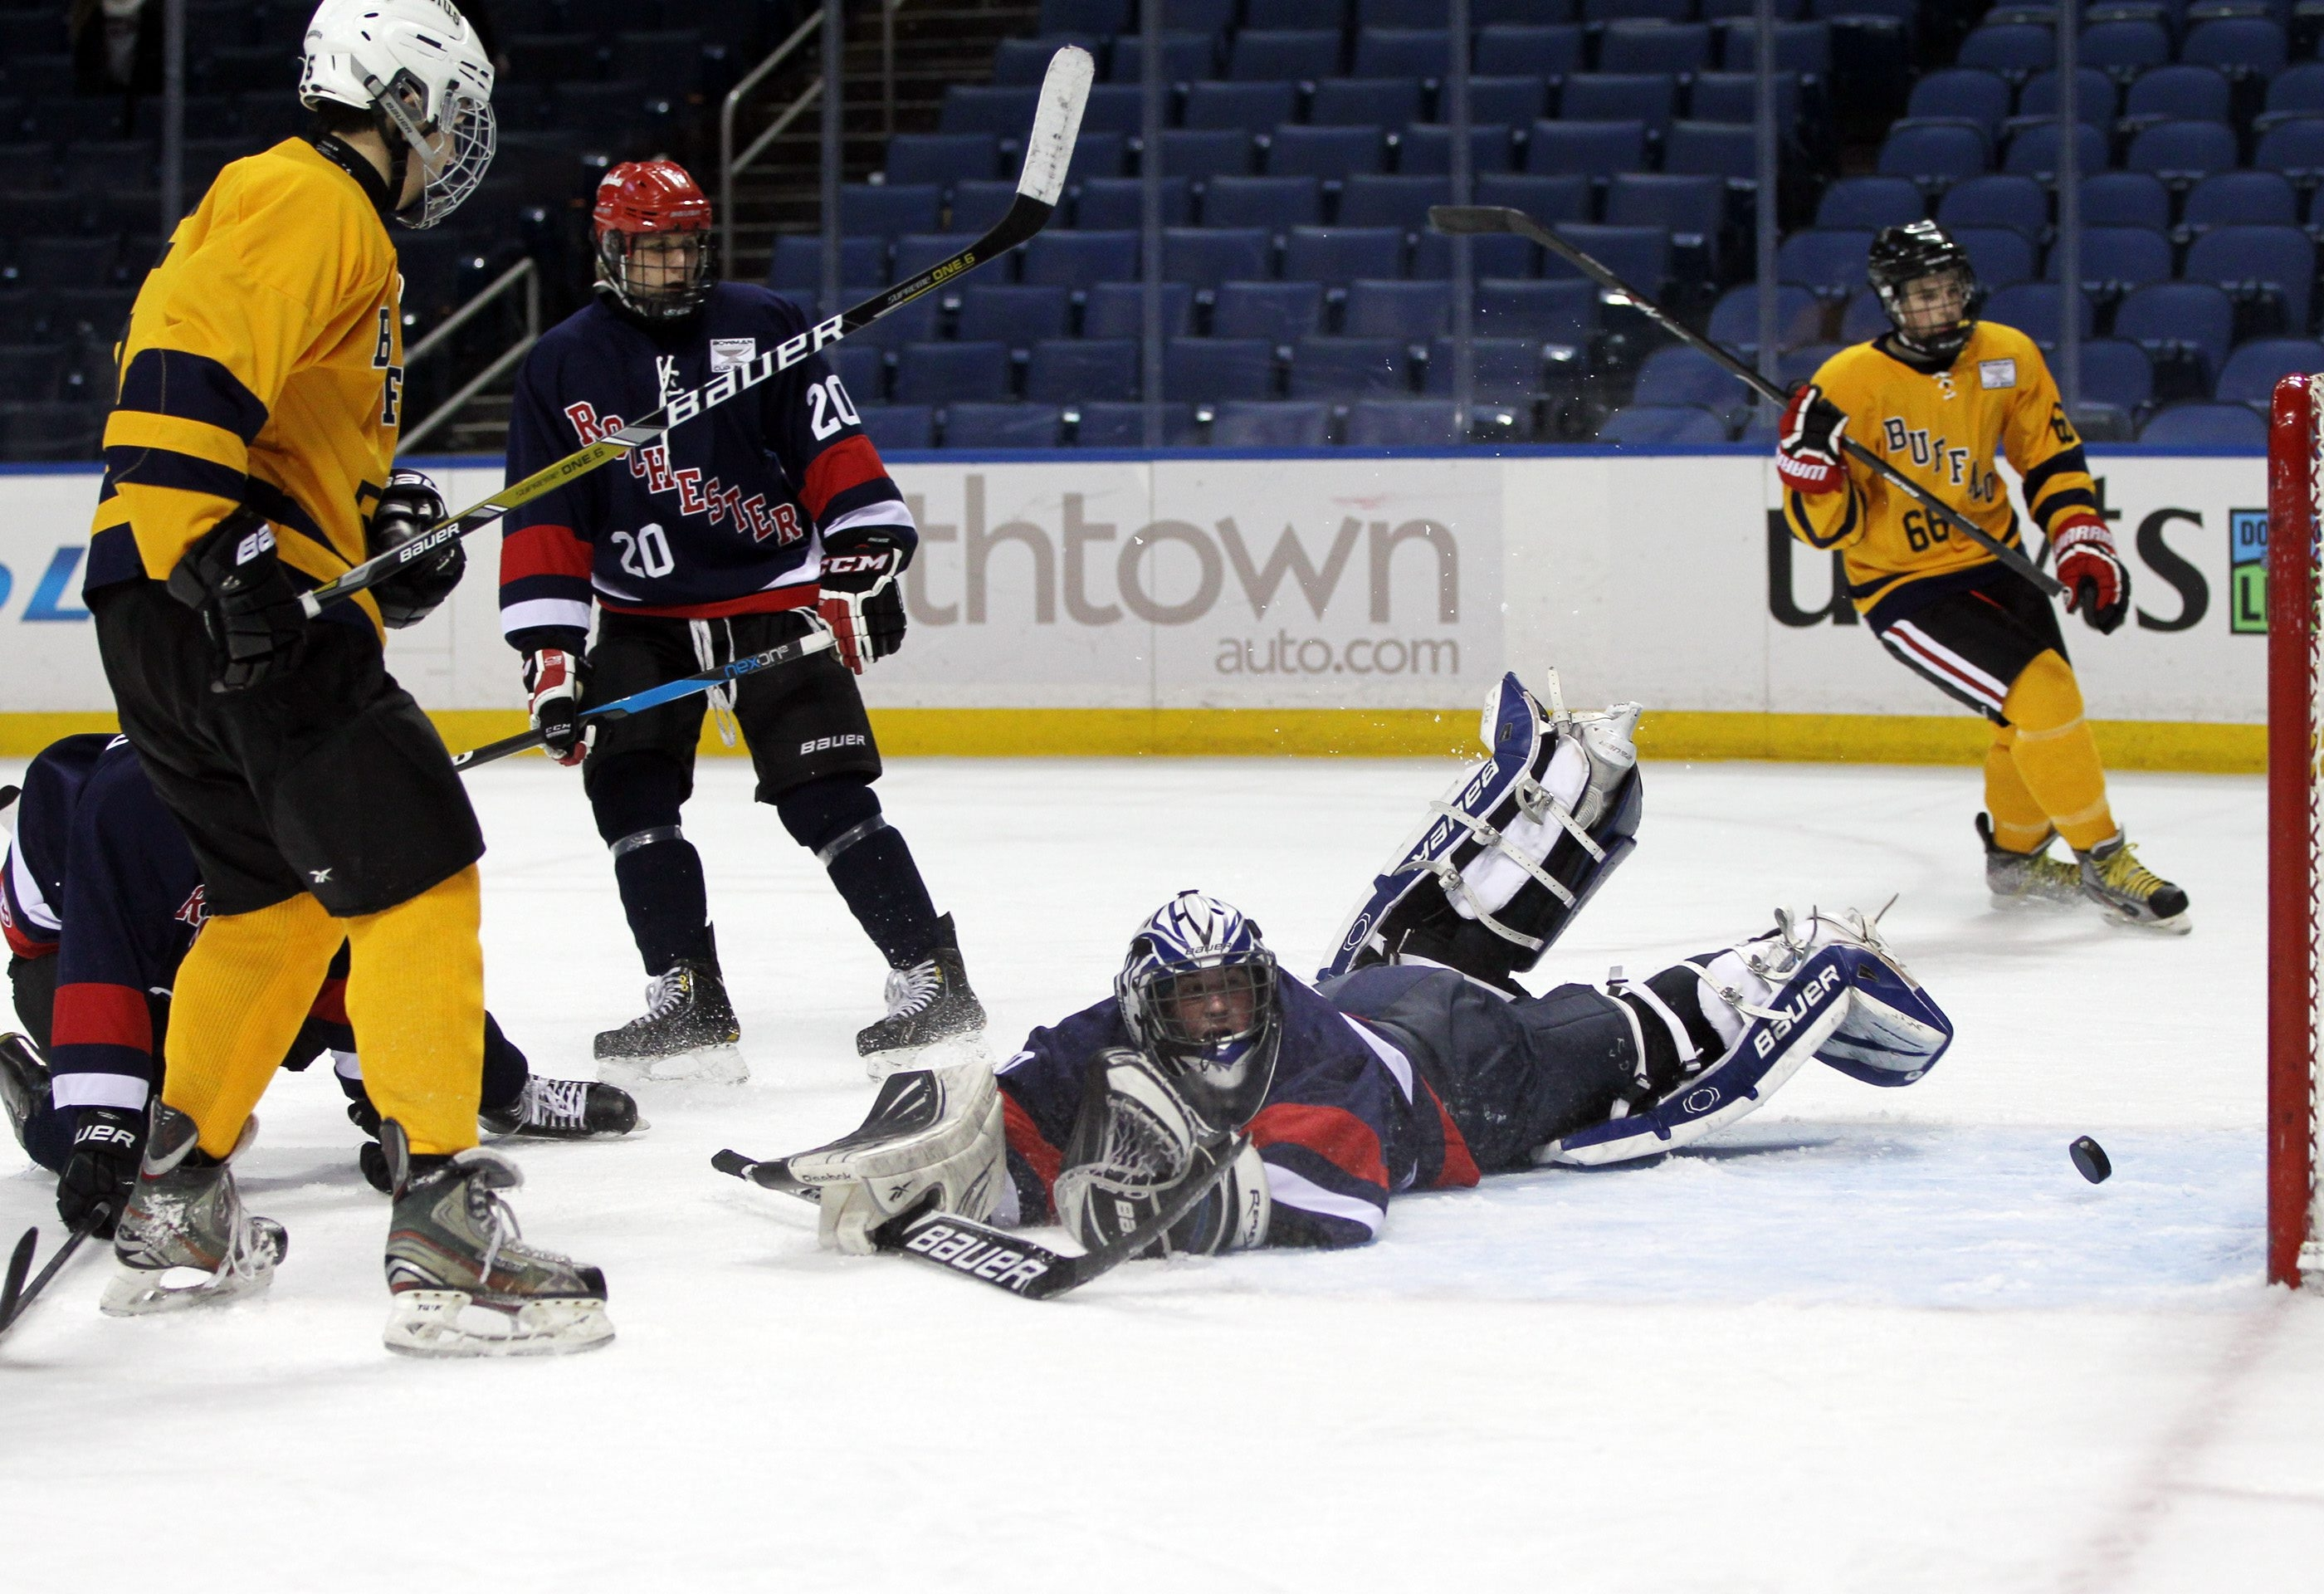 Buffalo's Steve Skinner scores against Rochester goalie Connor Greene during the Senior All-Star Game at the Scotty Bowman Showcase. Buffalo swept the three all-star games in the showcase at First Niagara Center – taking the seniors' game, 3-2, the Juniors' All-Star Game, 4-3,  in a shootout, and the Prep School/Junior League contest, 4-3, in overtime.